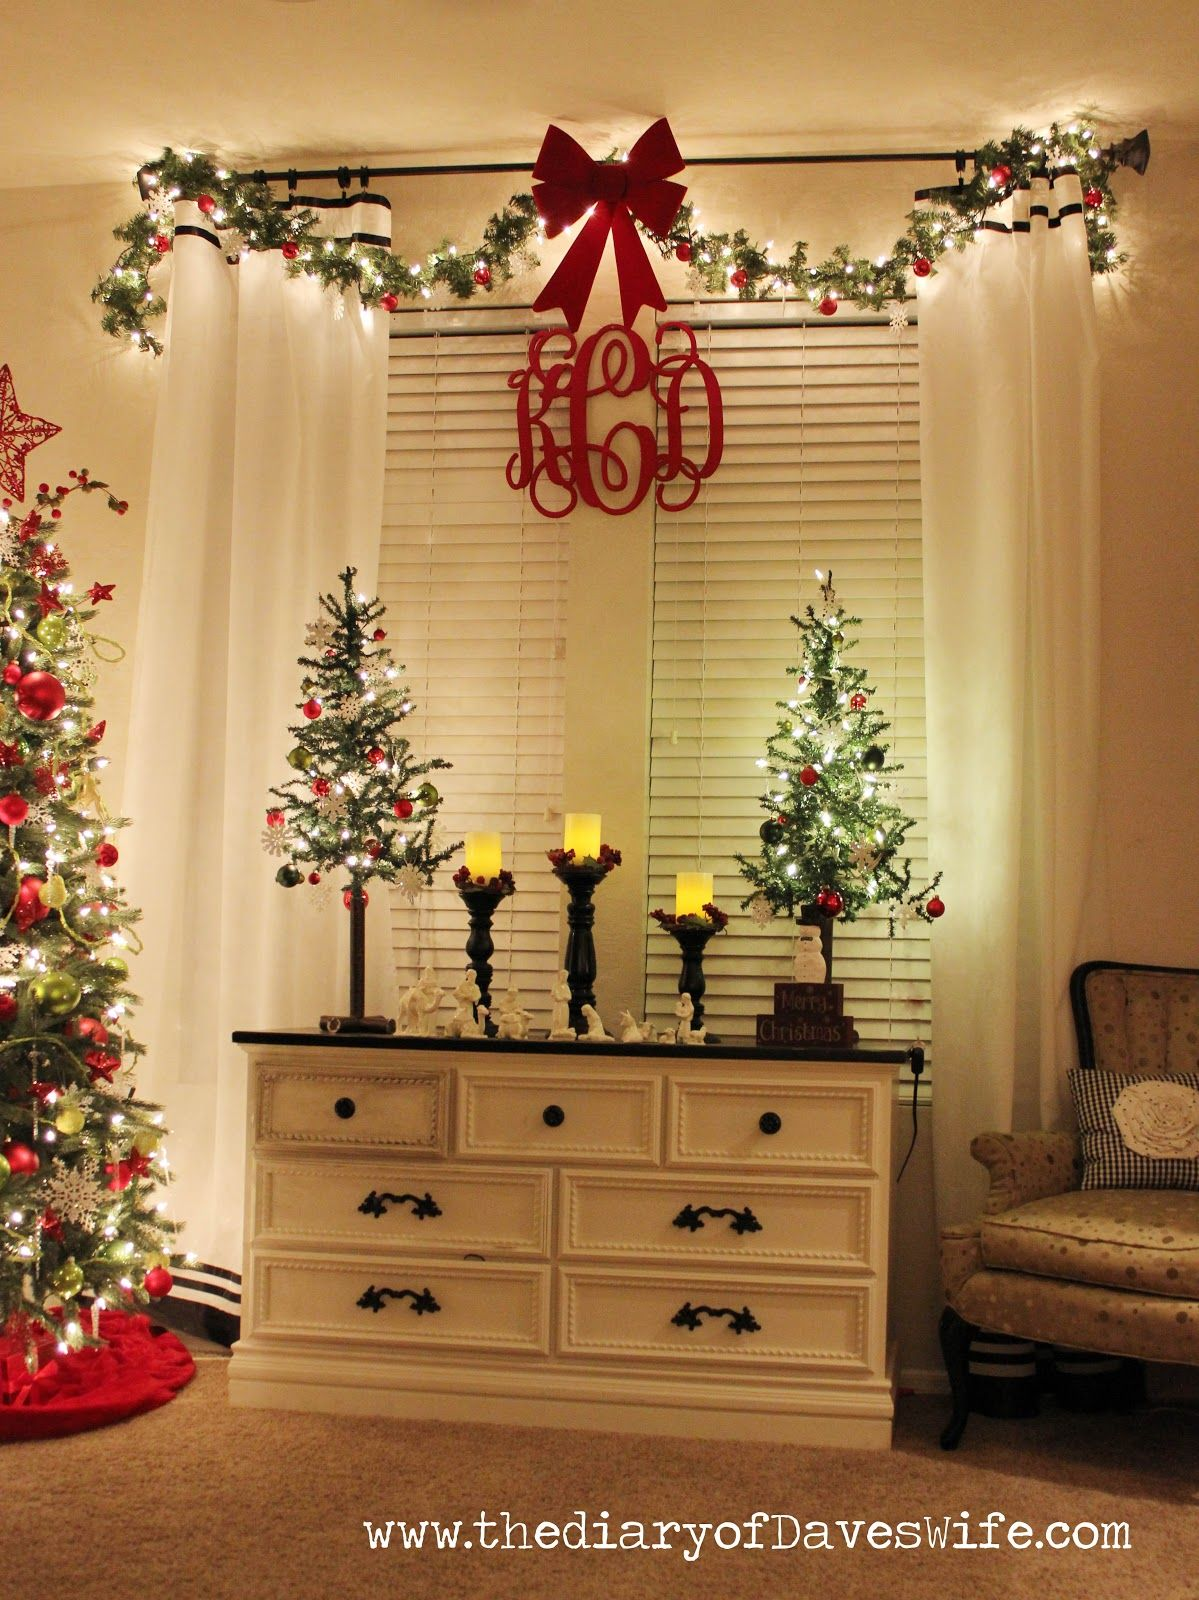 Living Room Decorations For Christmas Christmas Decor Love The Monogram In The Middle Definitely